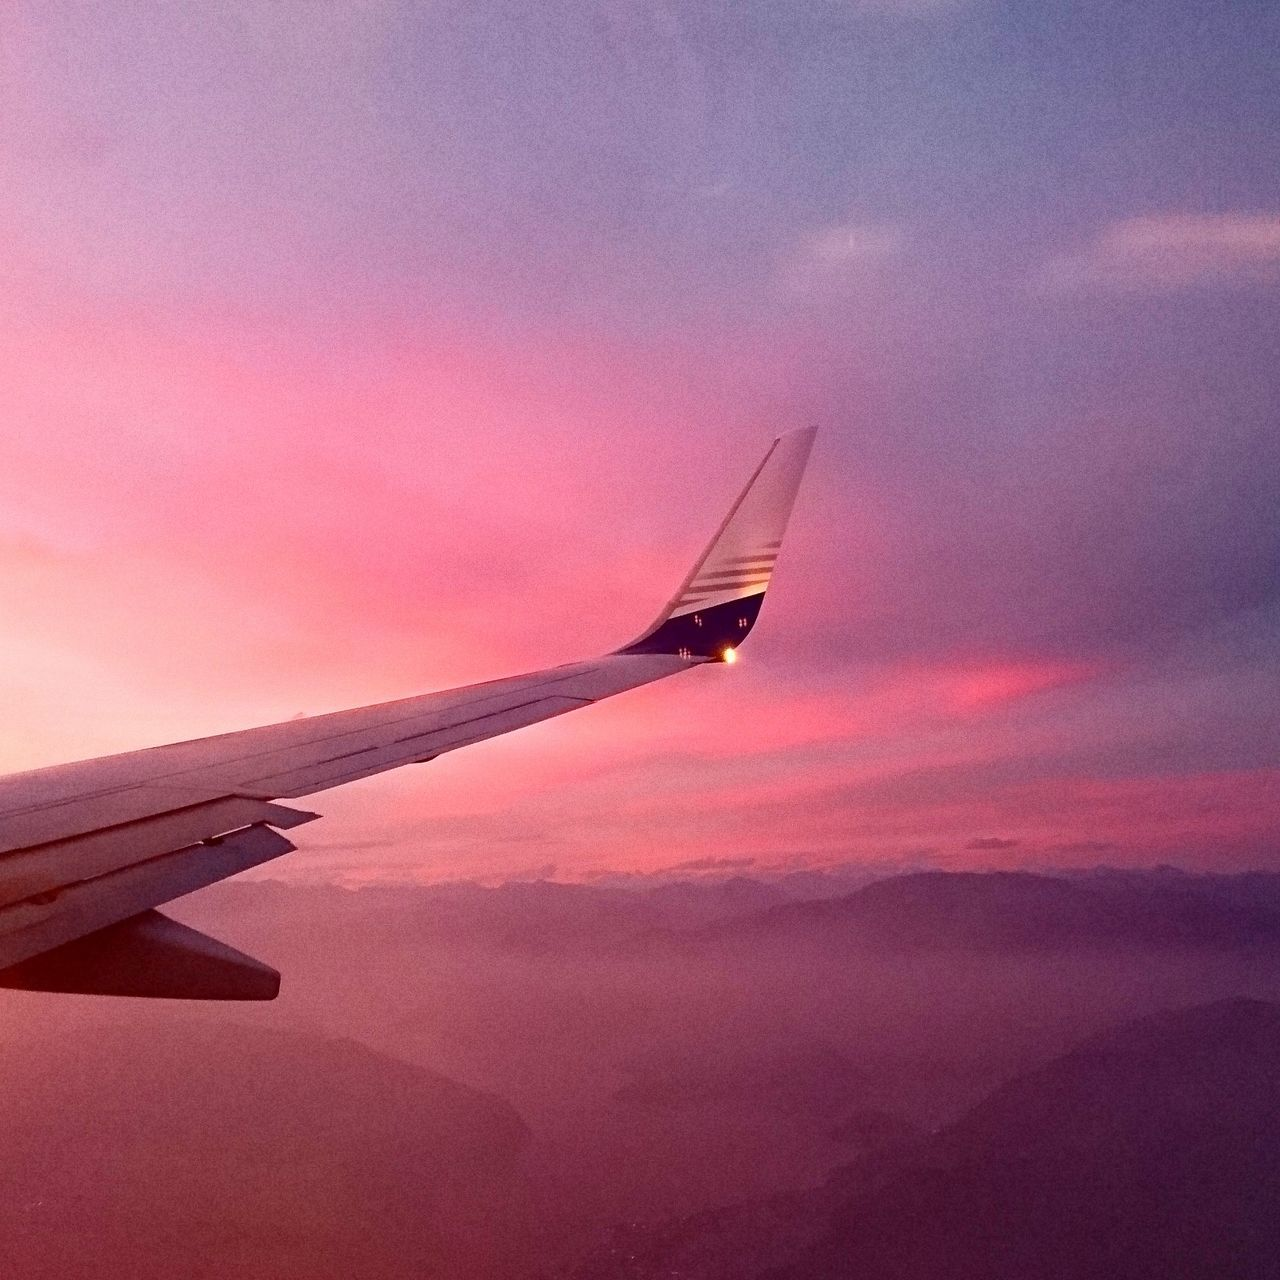 Sunset Airplane Transportation Travel Sky Nature Flying Beauty In Nature Pink Sky Cloud - Sky Summer Time  From Above  Colors Of Nature Nature